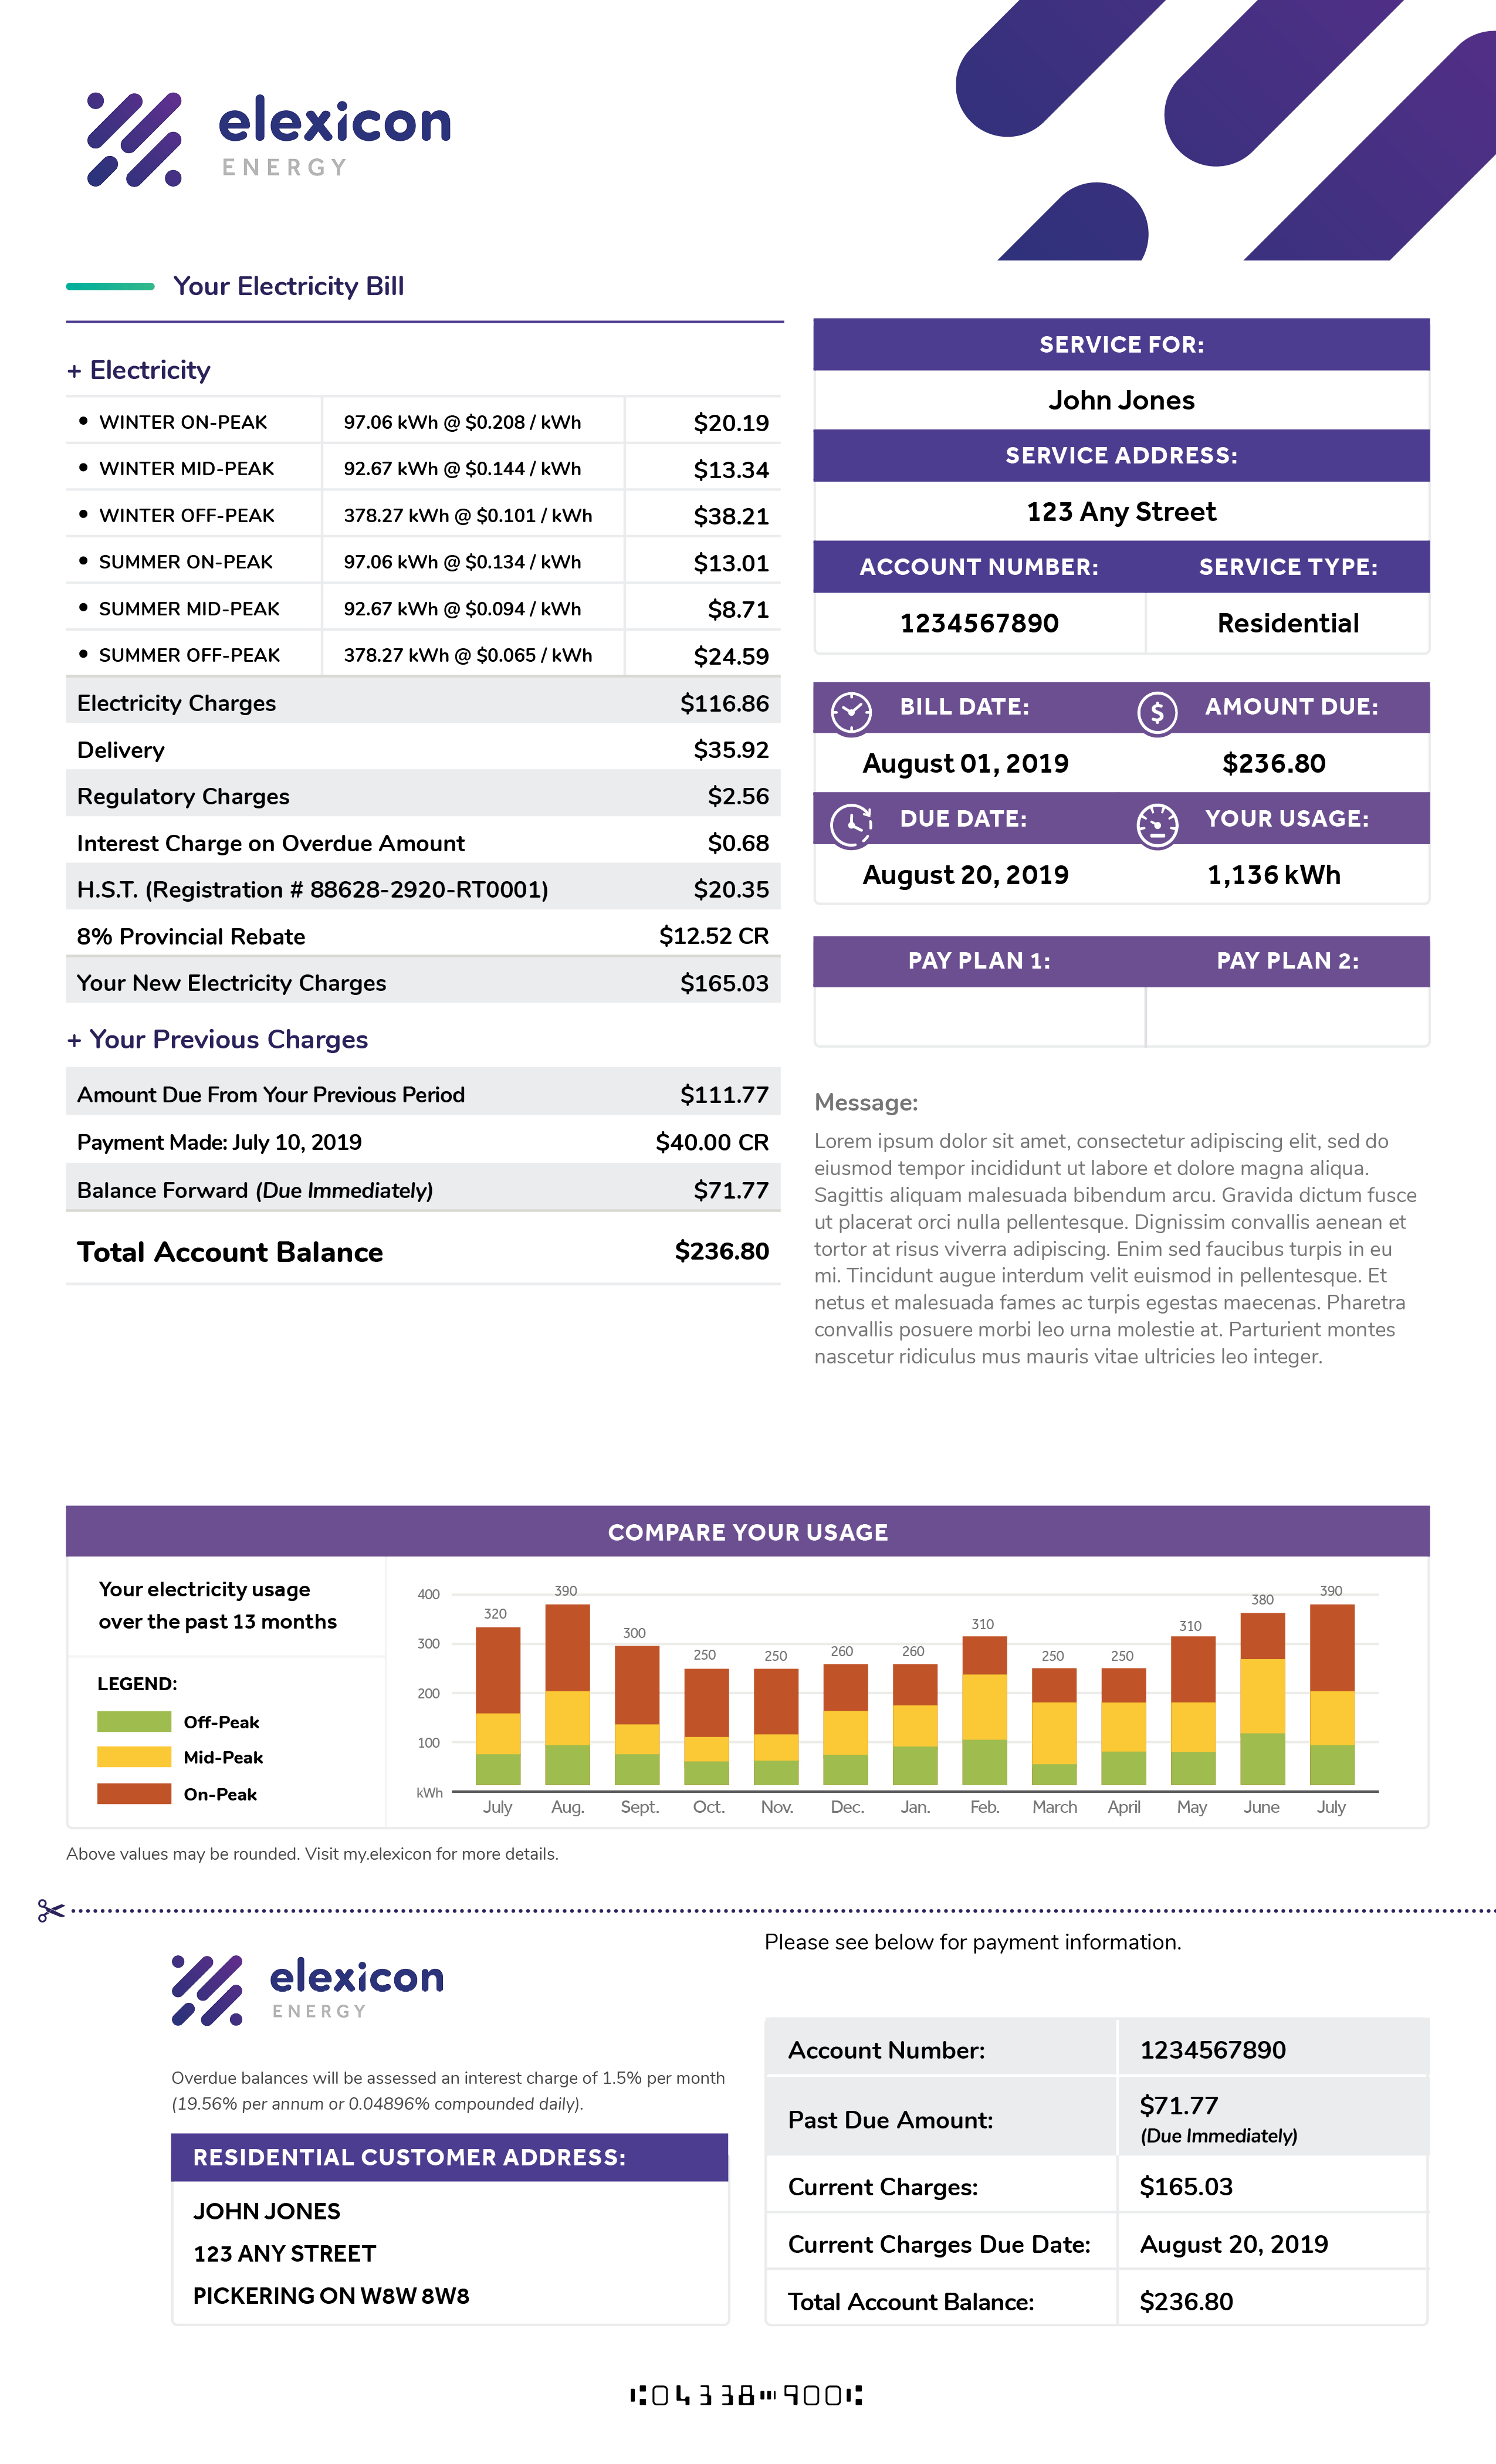 elexicon residential bill image